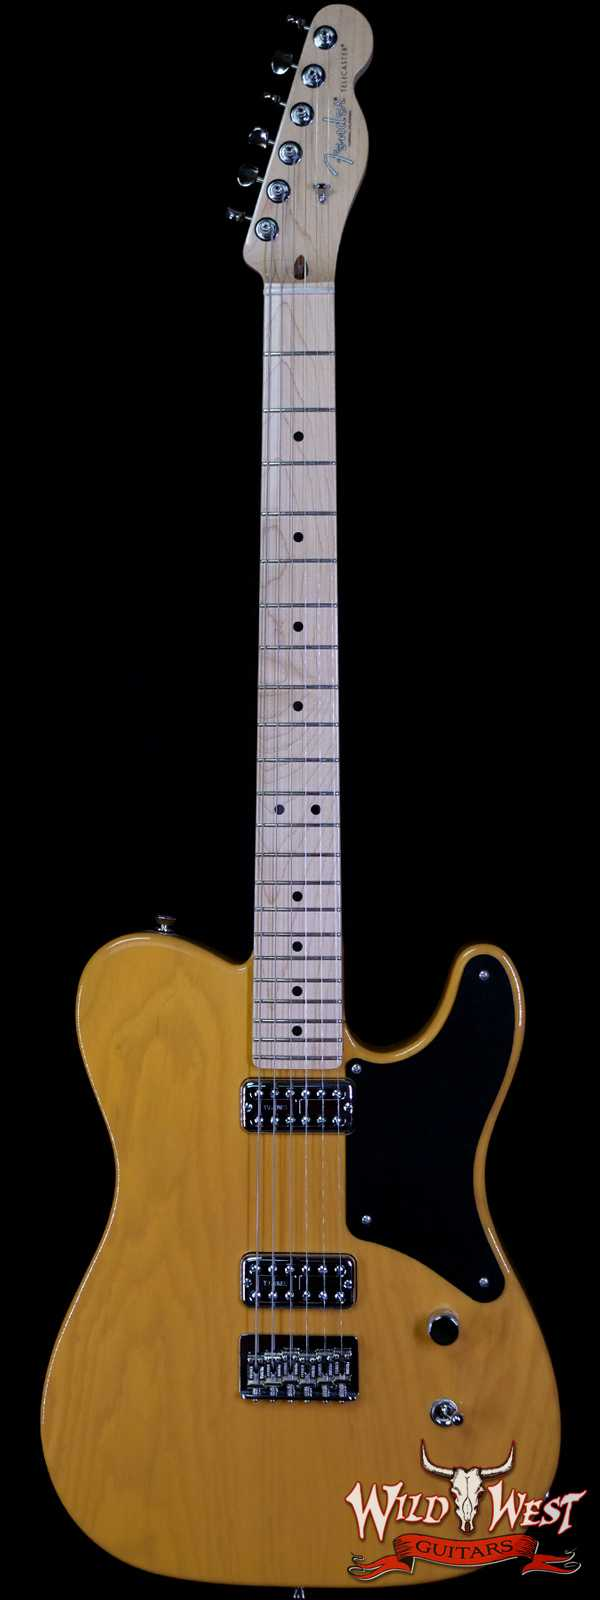 Fender USA Limited Edition Cabronita Telecaster Maple Neck TV Jones Classic Butterscotch Blonde LE09005